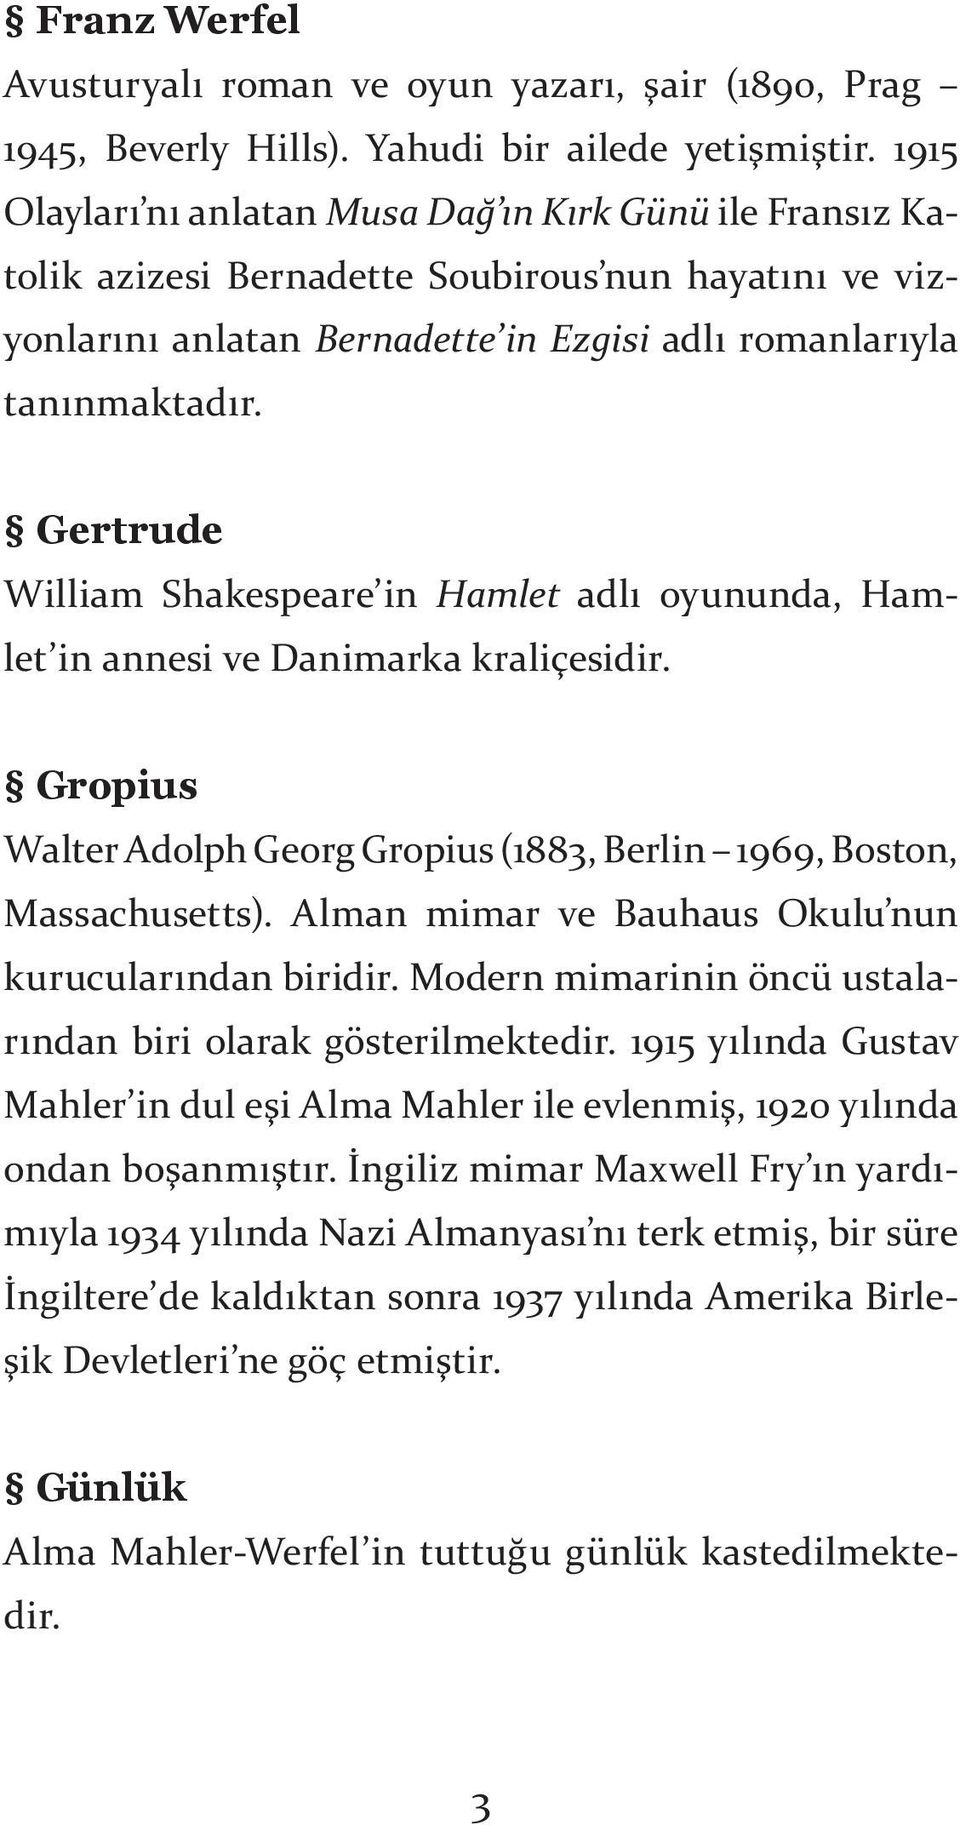 Gertrude William Shakespeare in Hamlet adlı oyununda, Hamlet in annesi ve Danimarka kraliçesidir. Gropius Walter Adolph Georg Gropius (1883, Berlin 1969, Boston, Massachusetts).